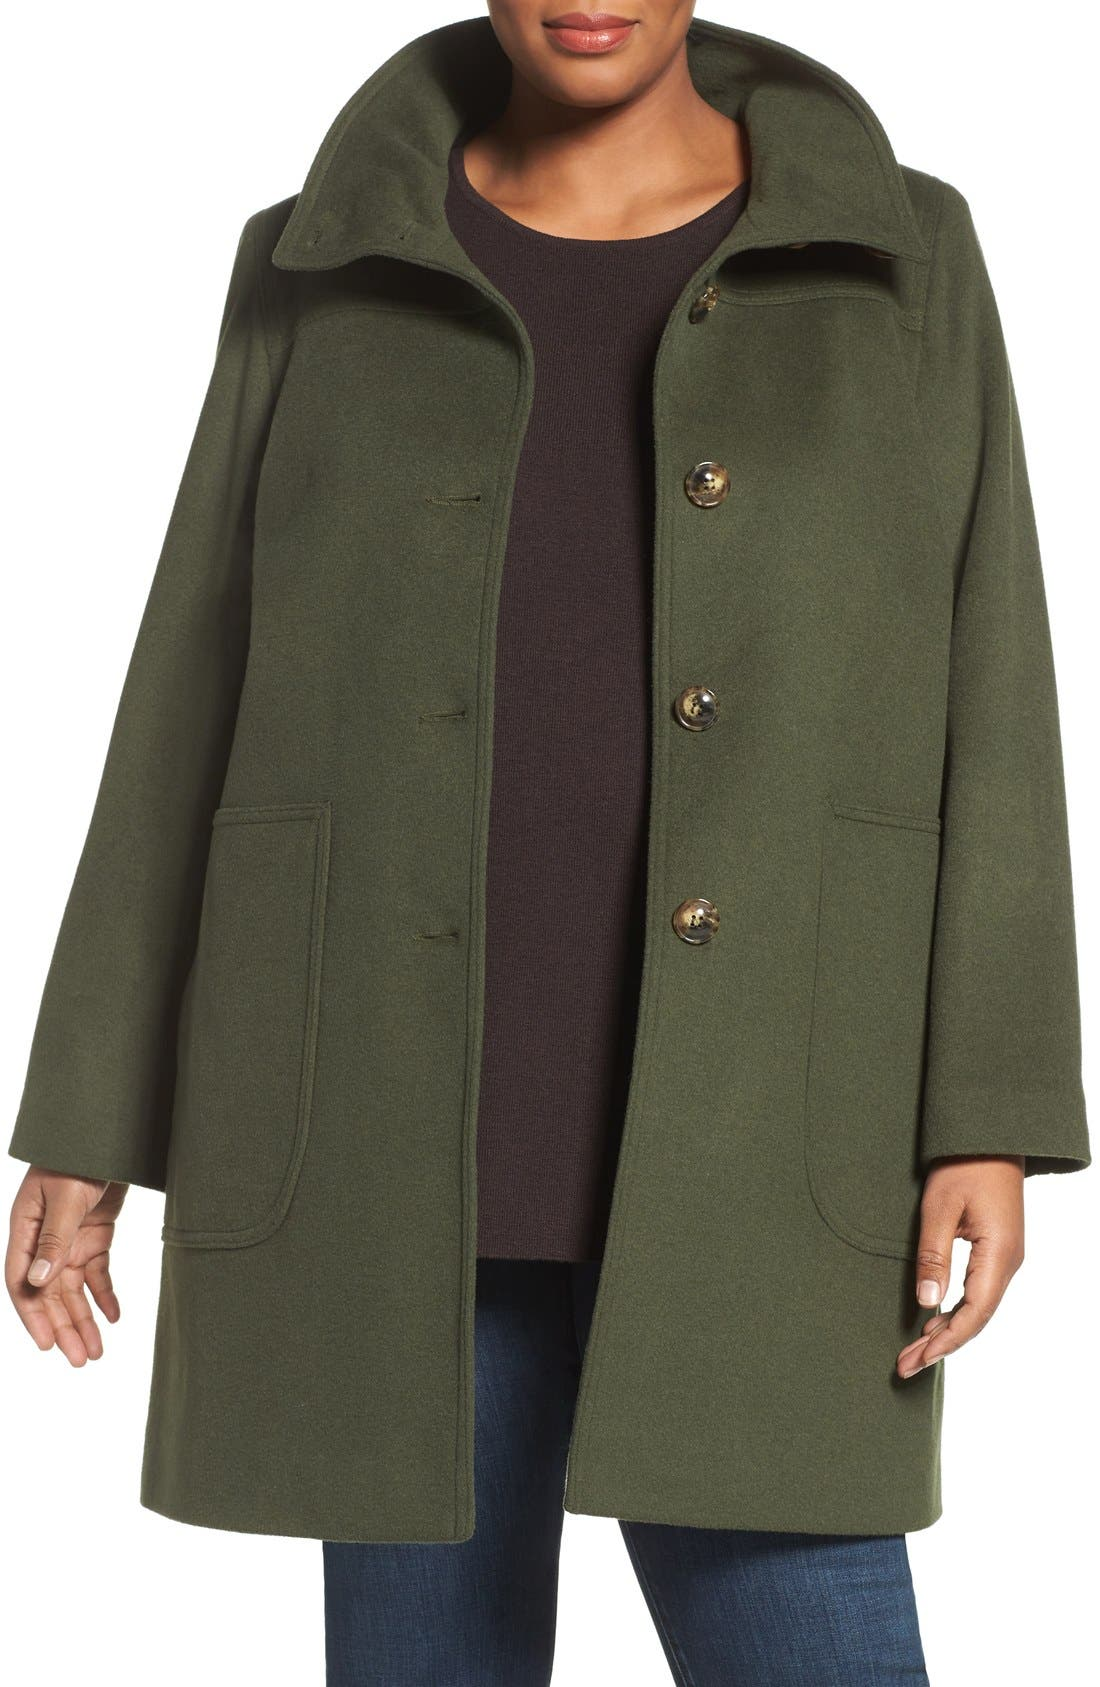 Main Image - Kristen Blake Patch Pocket Wool Blend Topcoat (Plus Size)